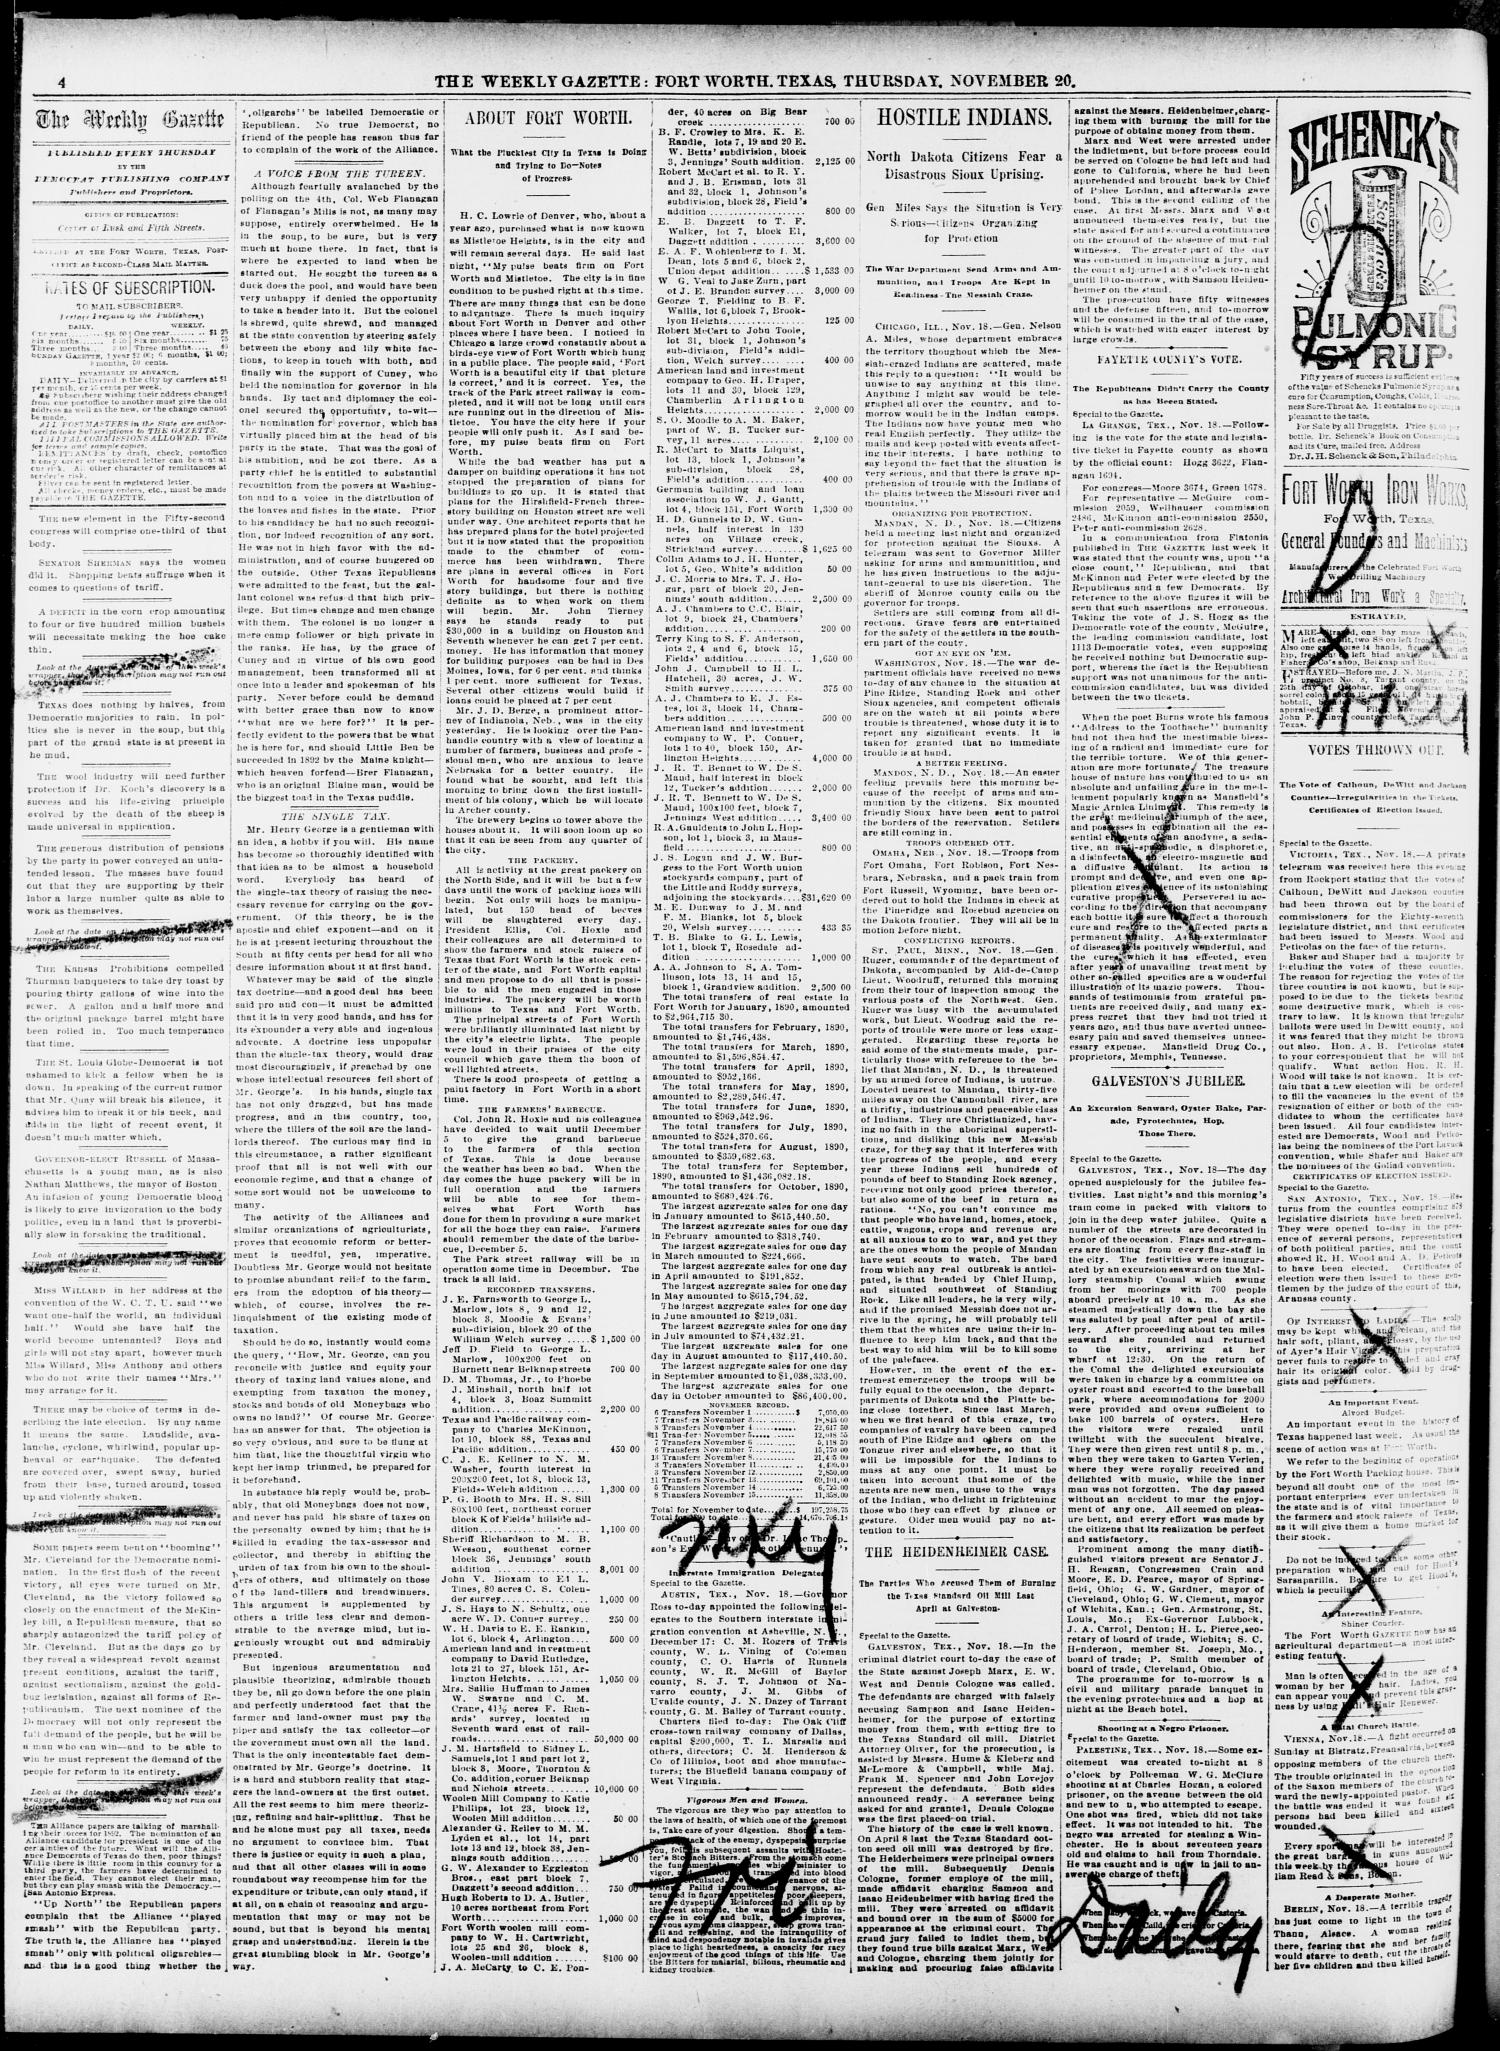 Fort Worth Weekly Gazette. (Fort Worth, Tex.), Vol. 12, No. 50, Ed. 1, Thursday, November 20, 1890                                                                                                      [Sequence #]: 4 of 12